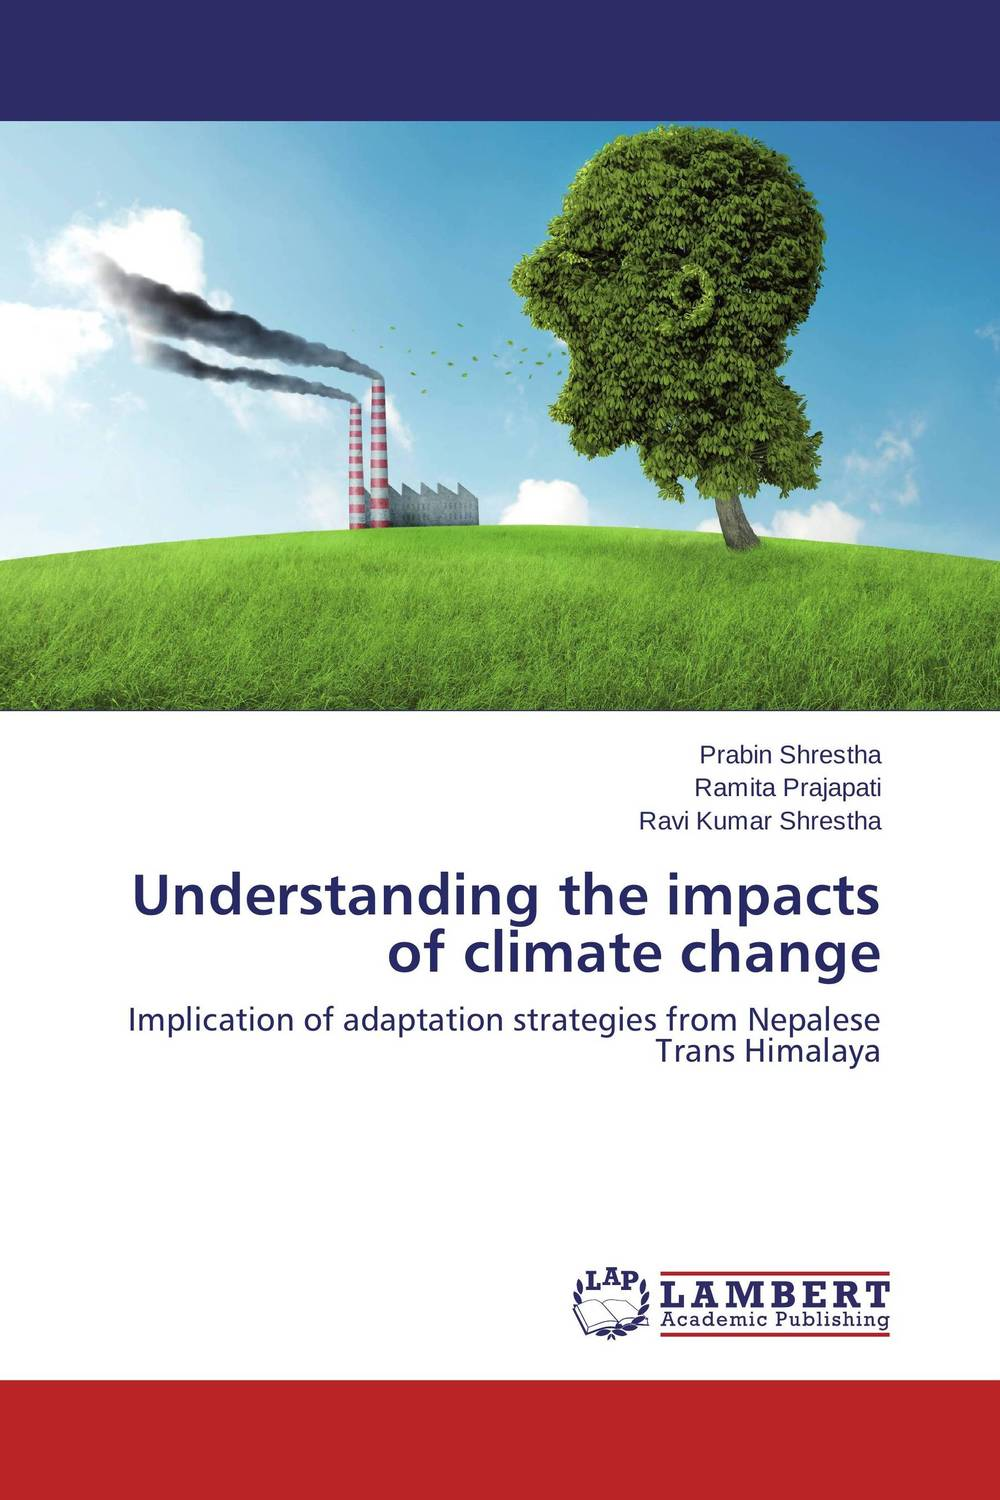 Understanding the impacts of climate change